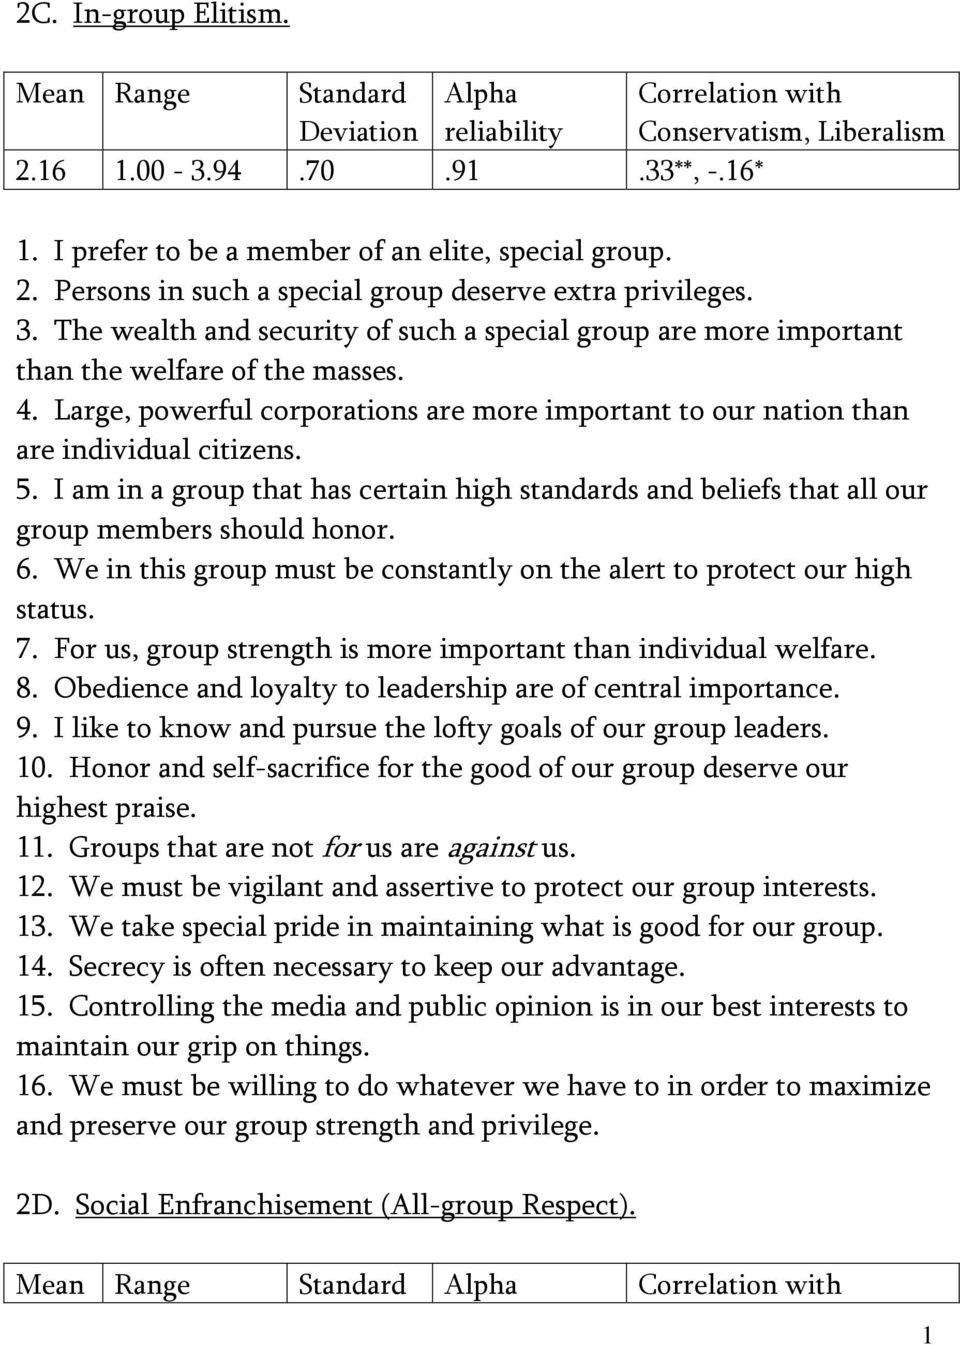 I am in a group that has certain high standards and beliefs that all our group members should honor. 6. We in this group must be constantly on the alert to protect our high status. 7.